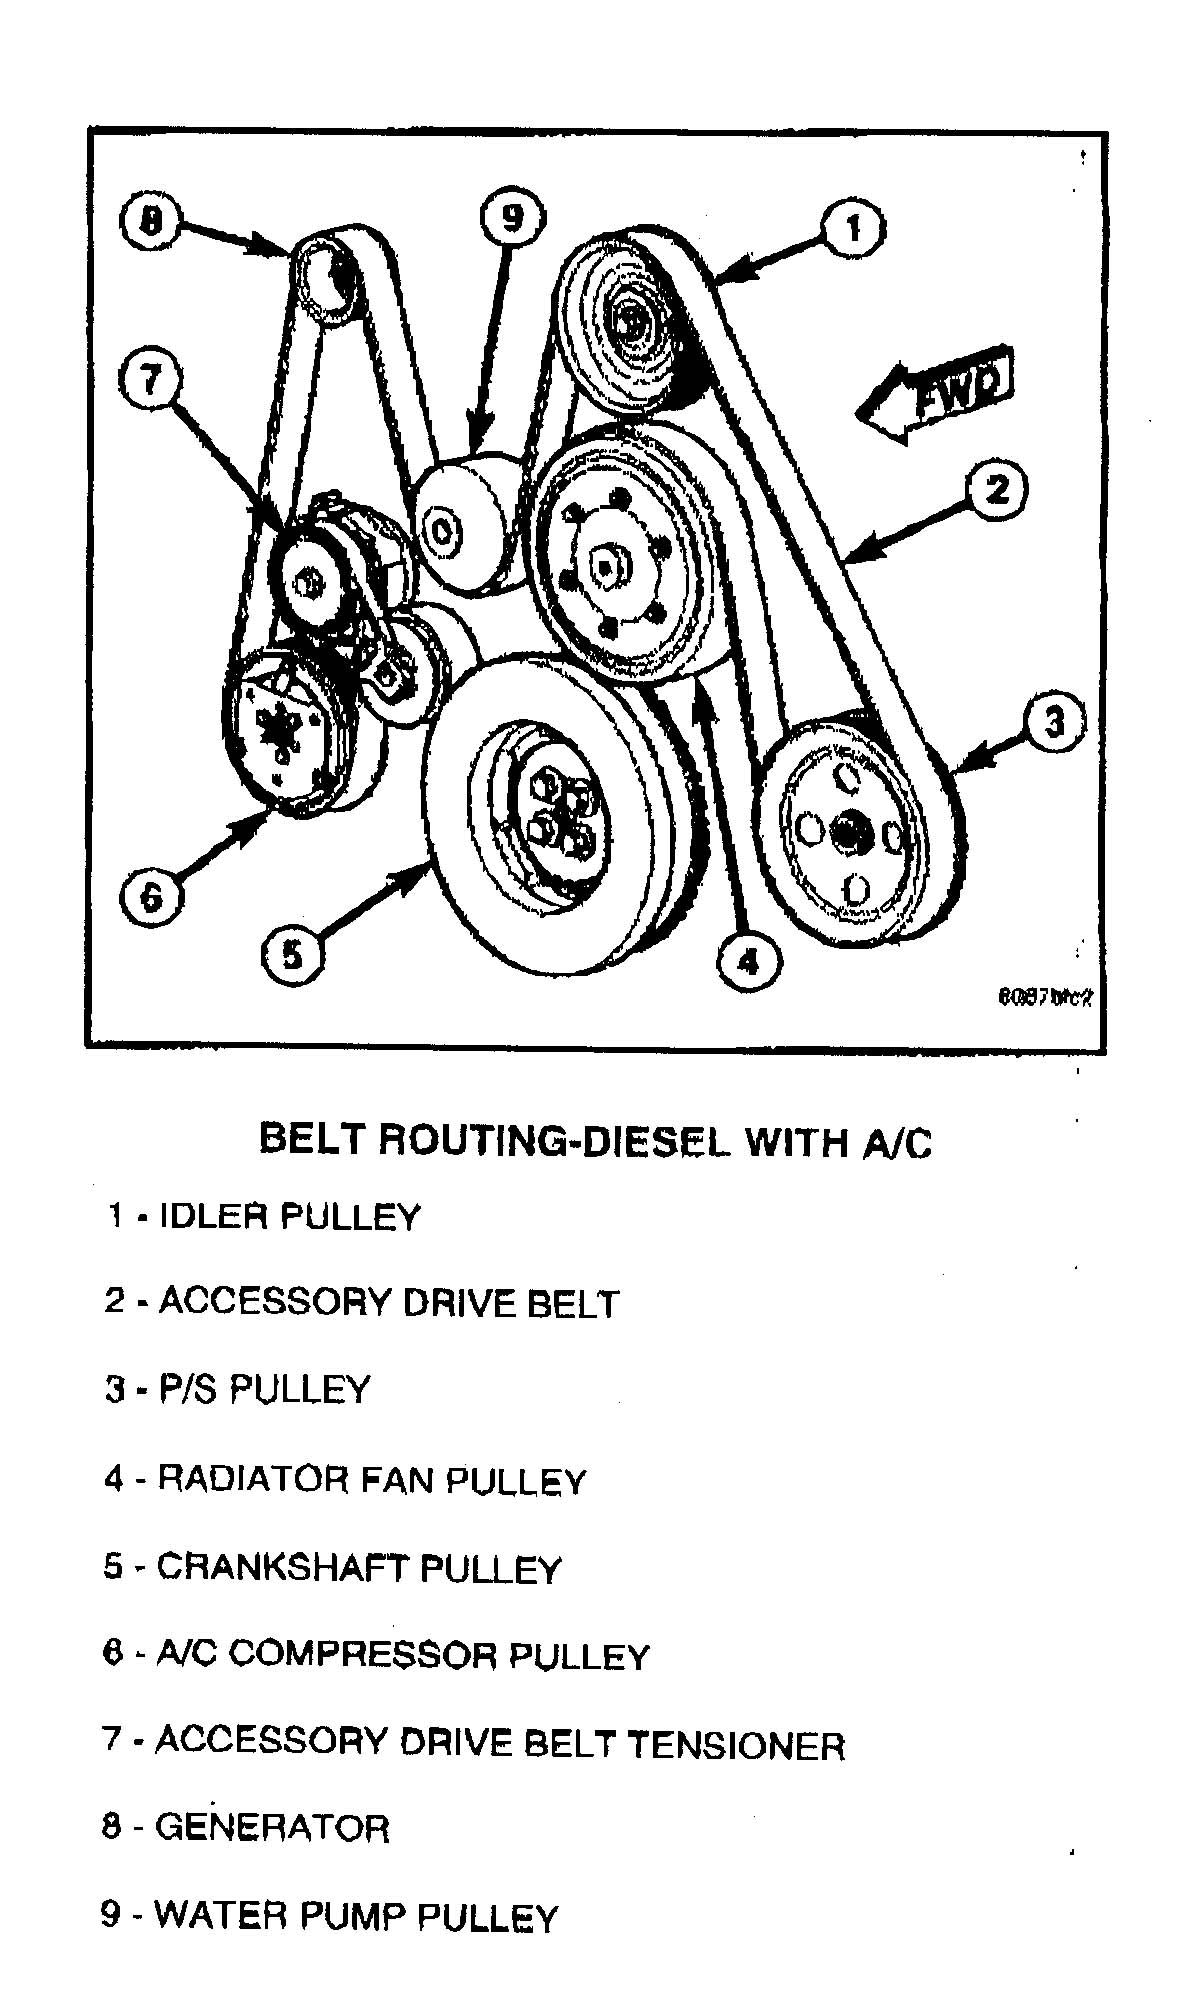 hight resolution of 6 7 belt routing diagram dodge diesel diesel truck resource 2010 dodge journey belt routing diagram